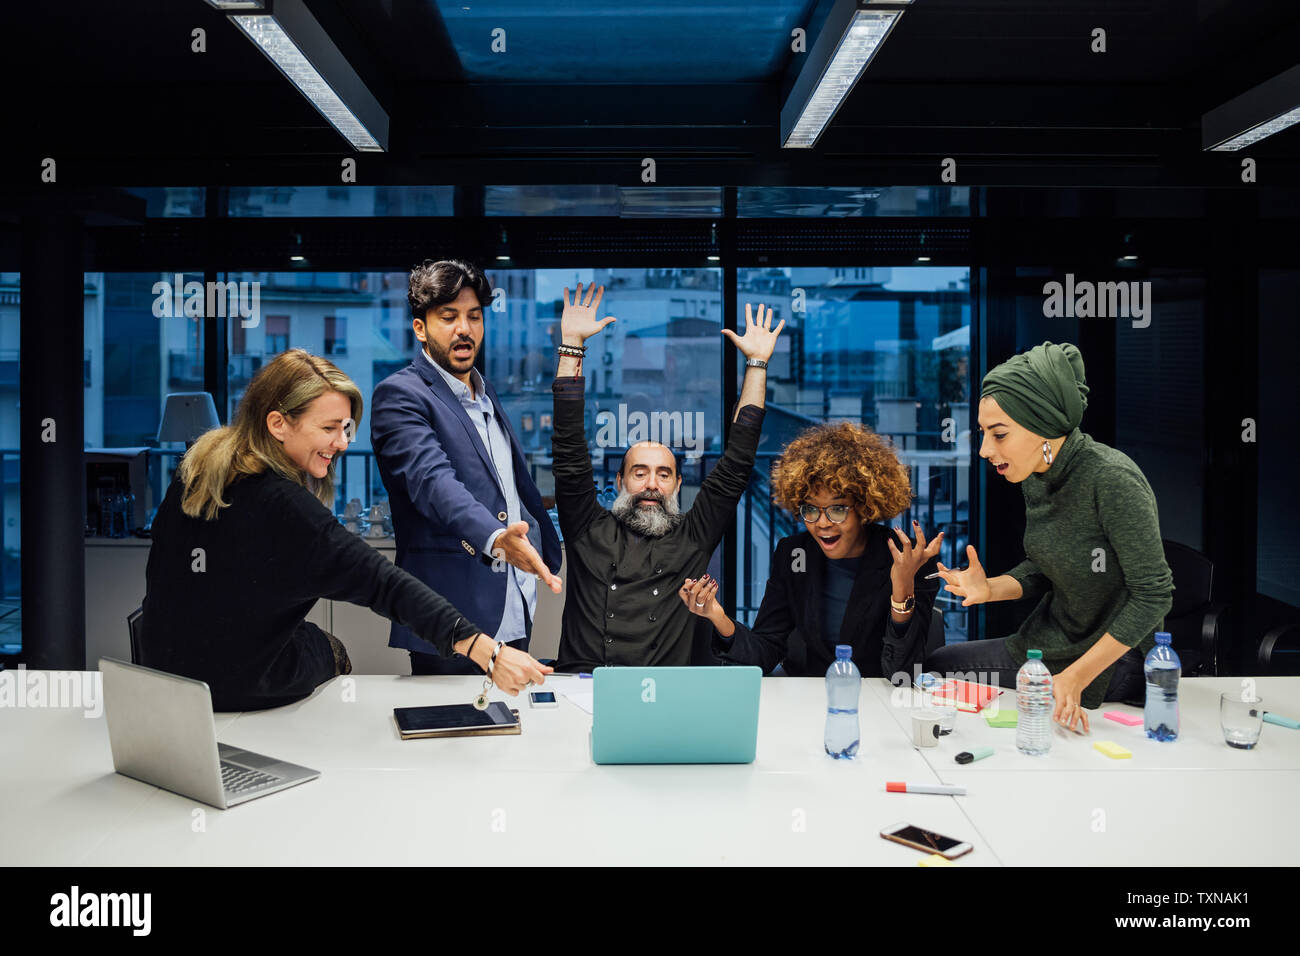 Business partners rejoicing in office - Stock Image